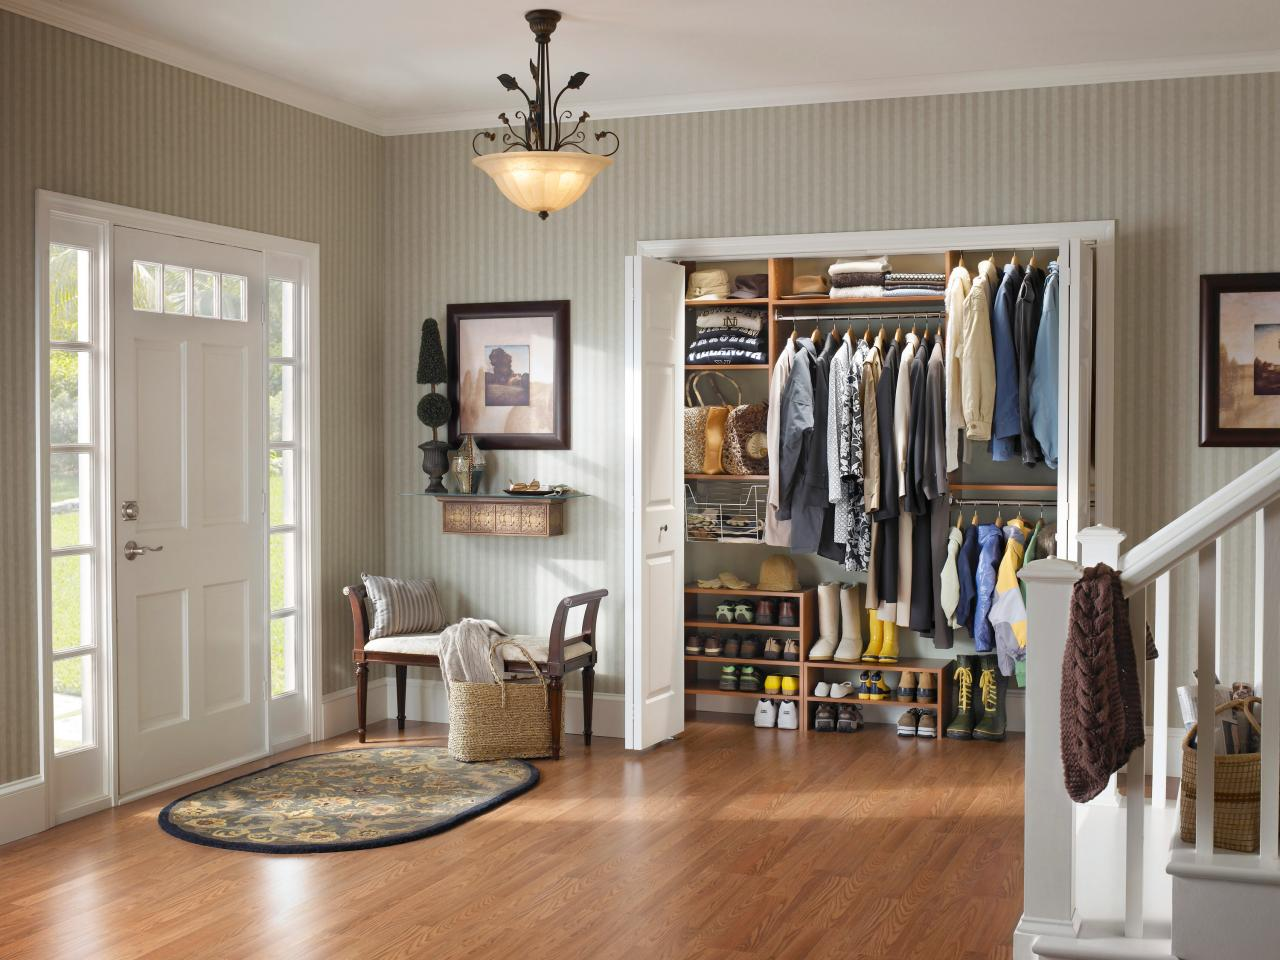 entryway janssen closet milano solutions california cabinet organization grey storage entryways closets entry gllry lago